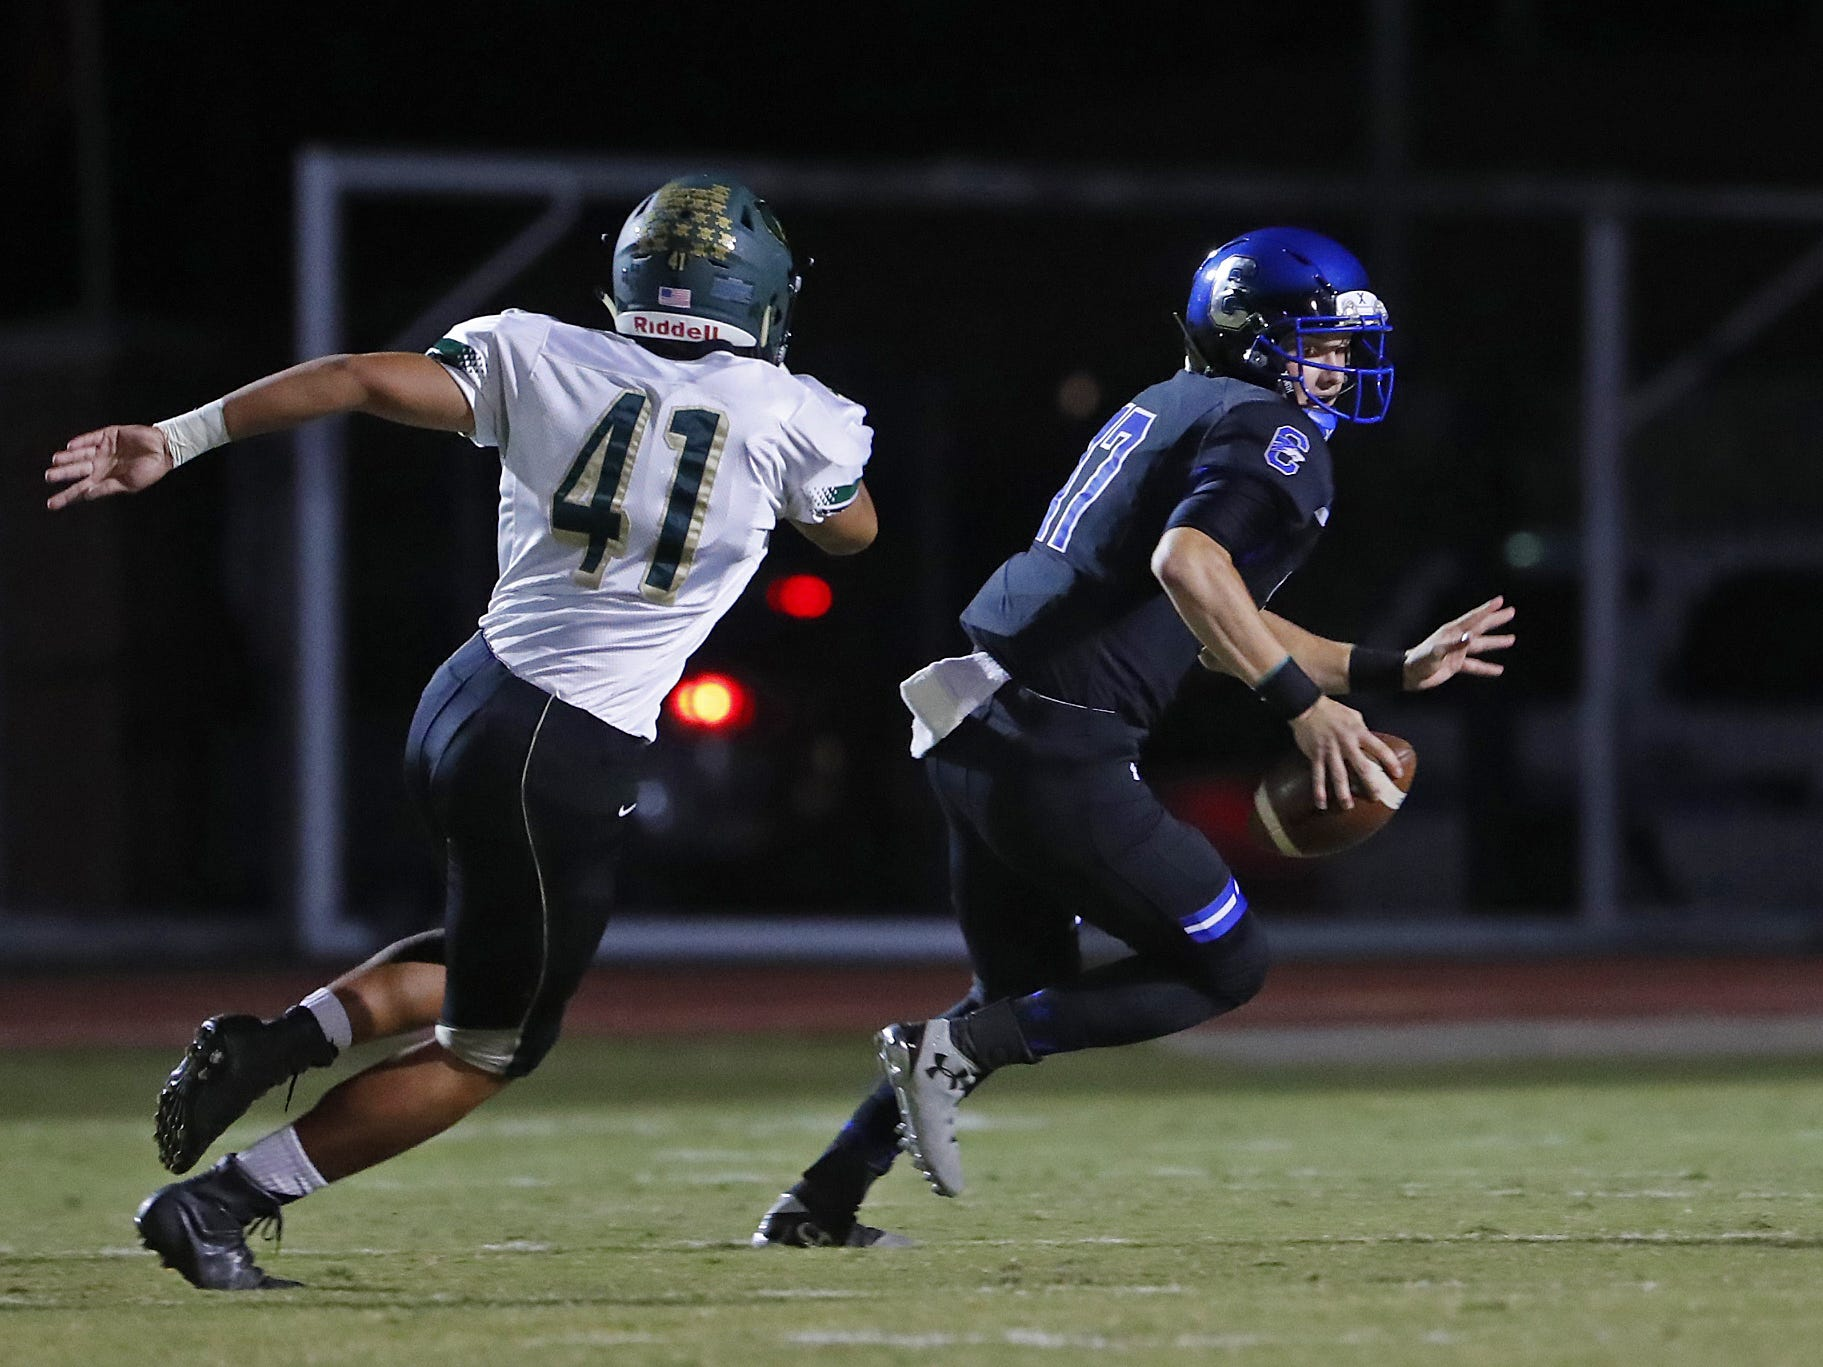 Basha's Charles Gilbert (41) chases down Chandler quarterback Jacob Conover (17) at Chandler High School in Chandler, Ariz. on October 12, 2018. #azhsfb